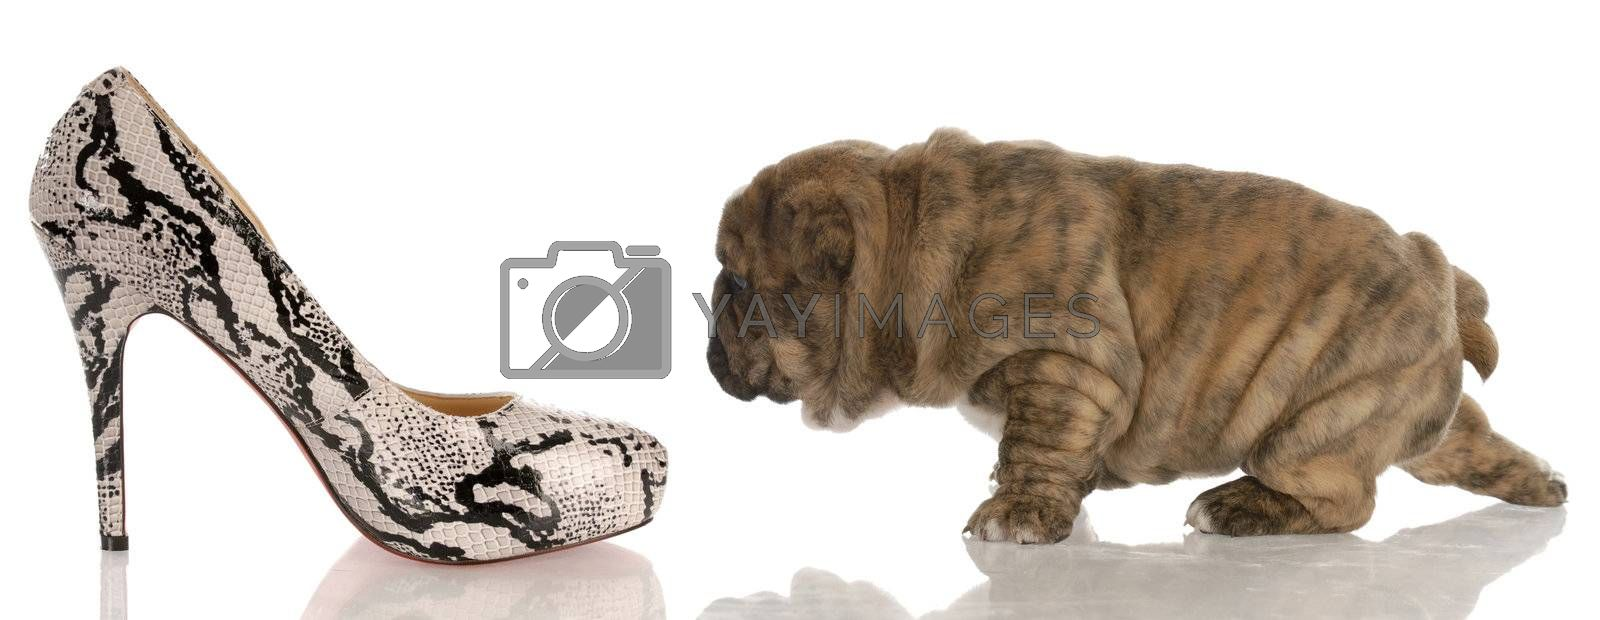 four week old english bulldog puppy sneaking up on woman's high heeled shoes